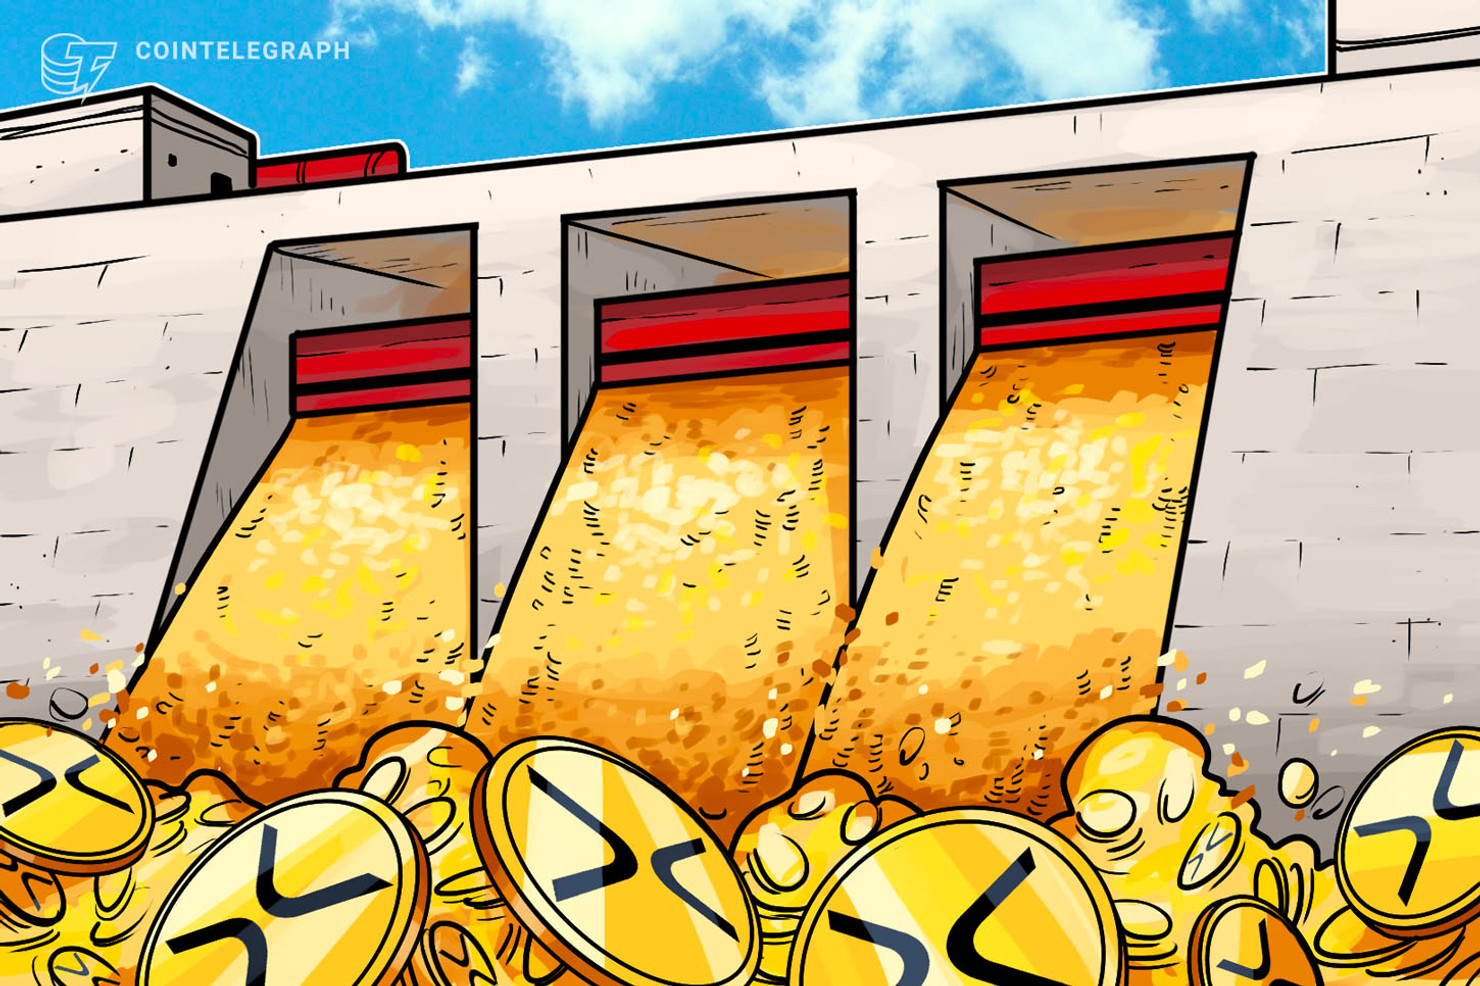 'Dogs---? Who Cares' — XRP Price Flags as BitMEX Debuts Perpetual Swaps